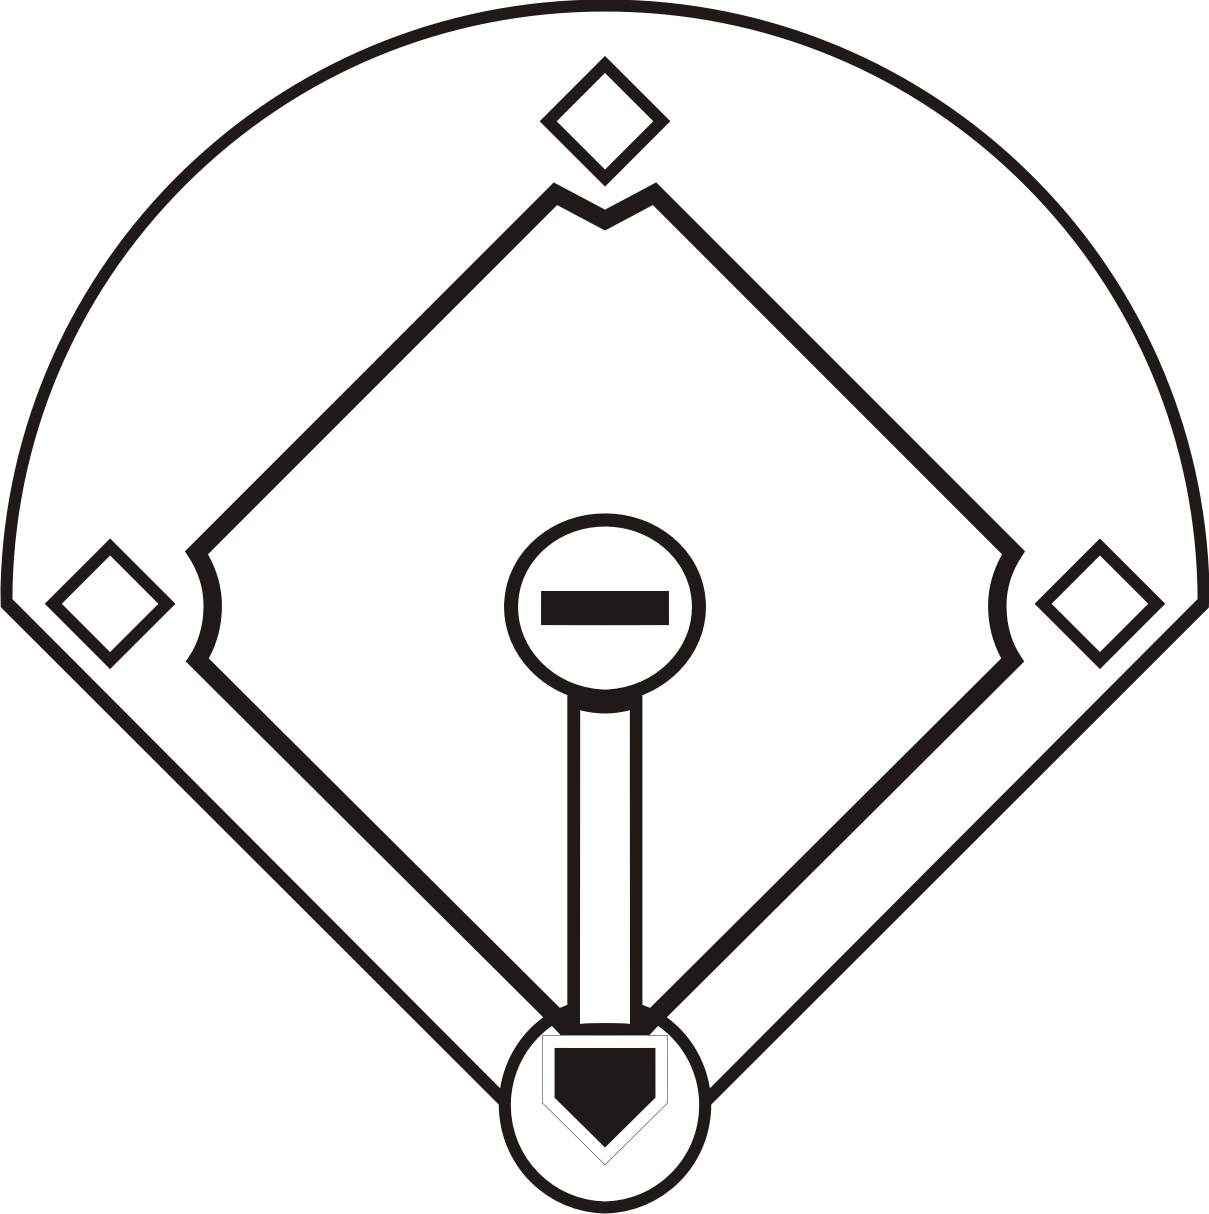 black and white baseball field clipart